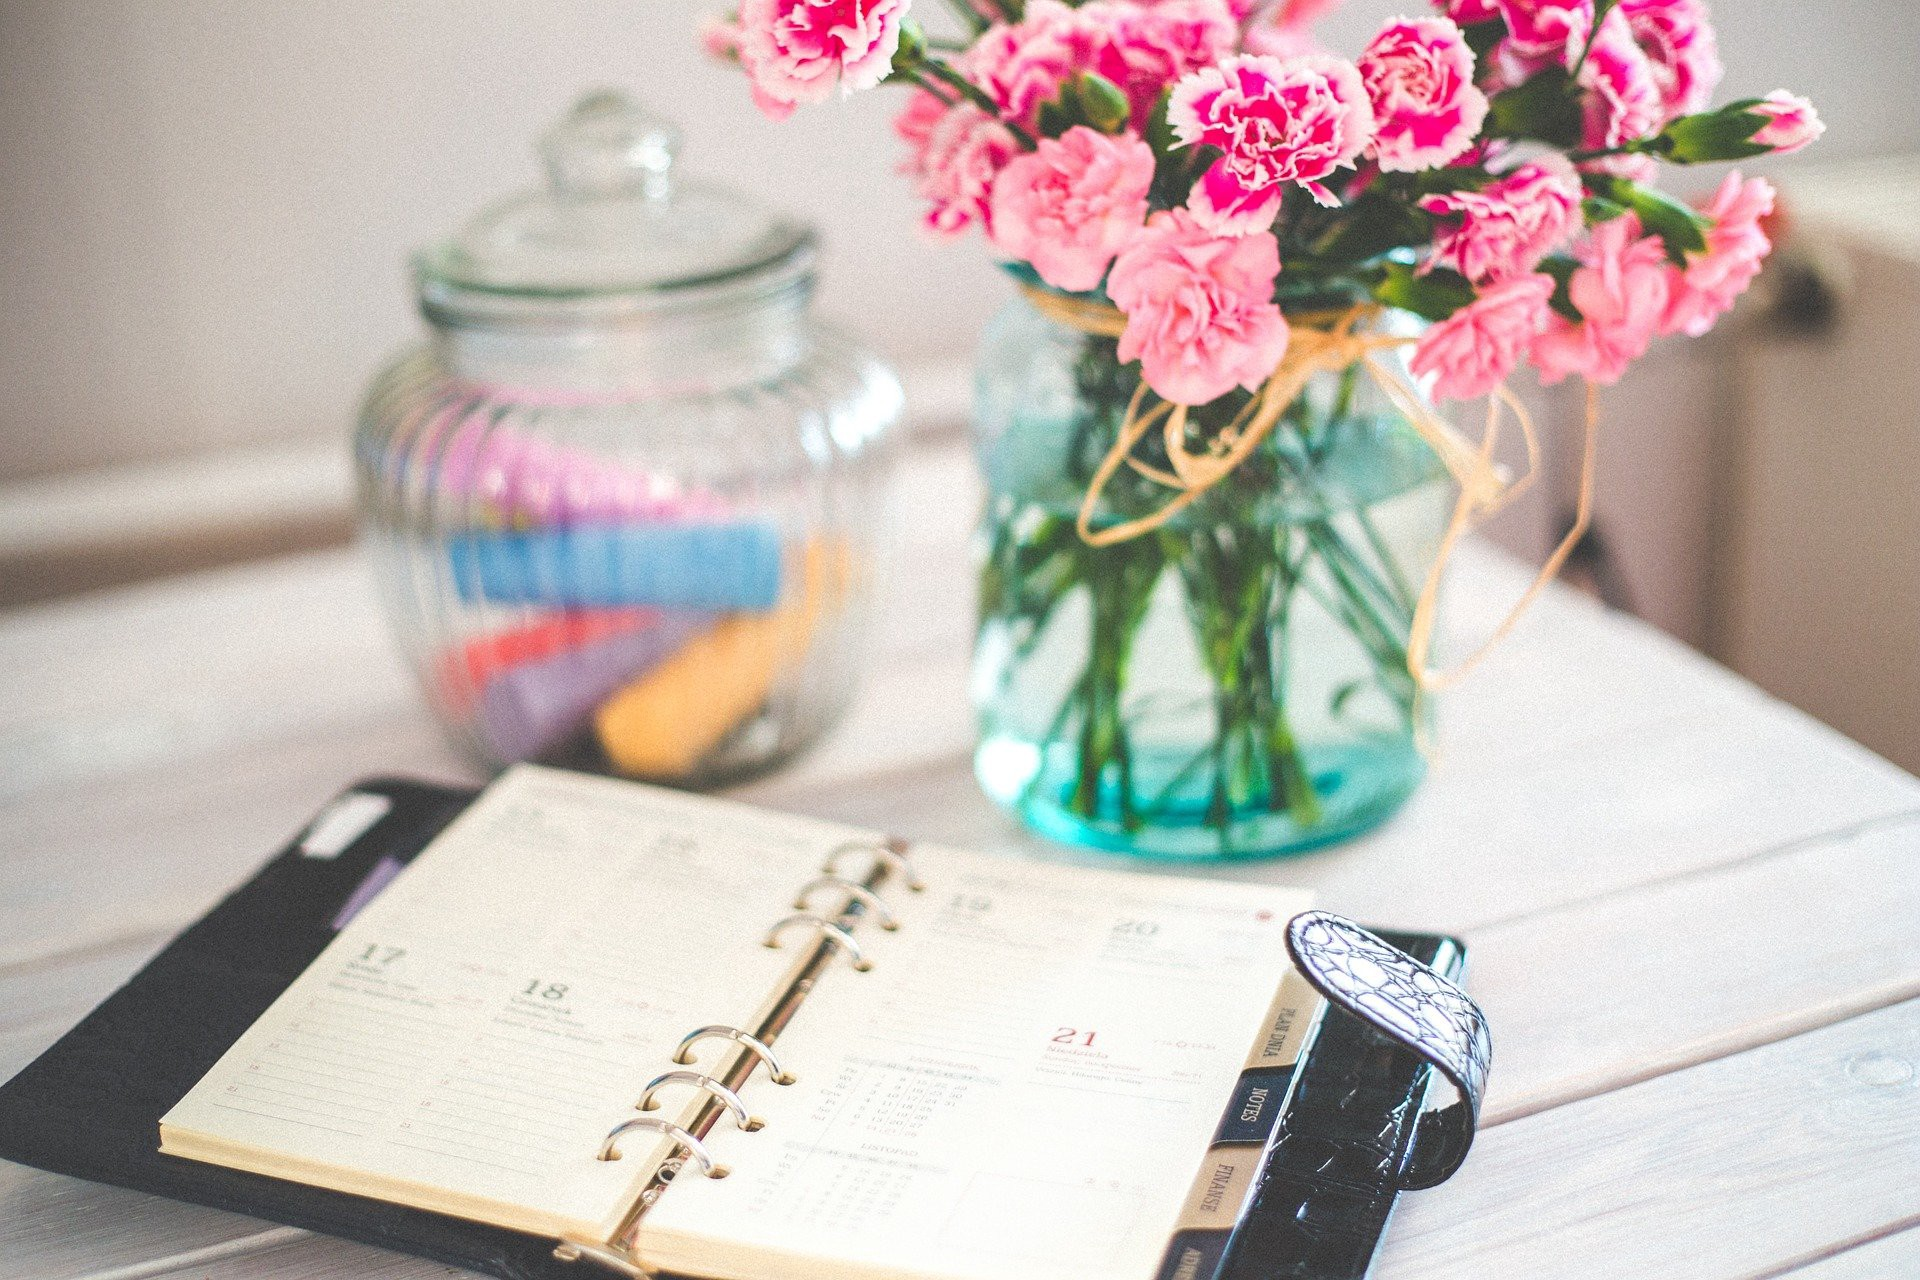 A vase of pink flowers and a notebook on a table